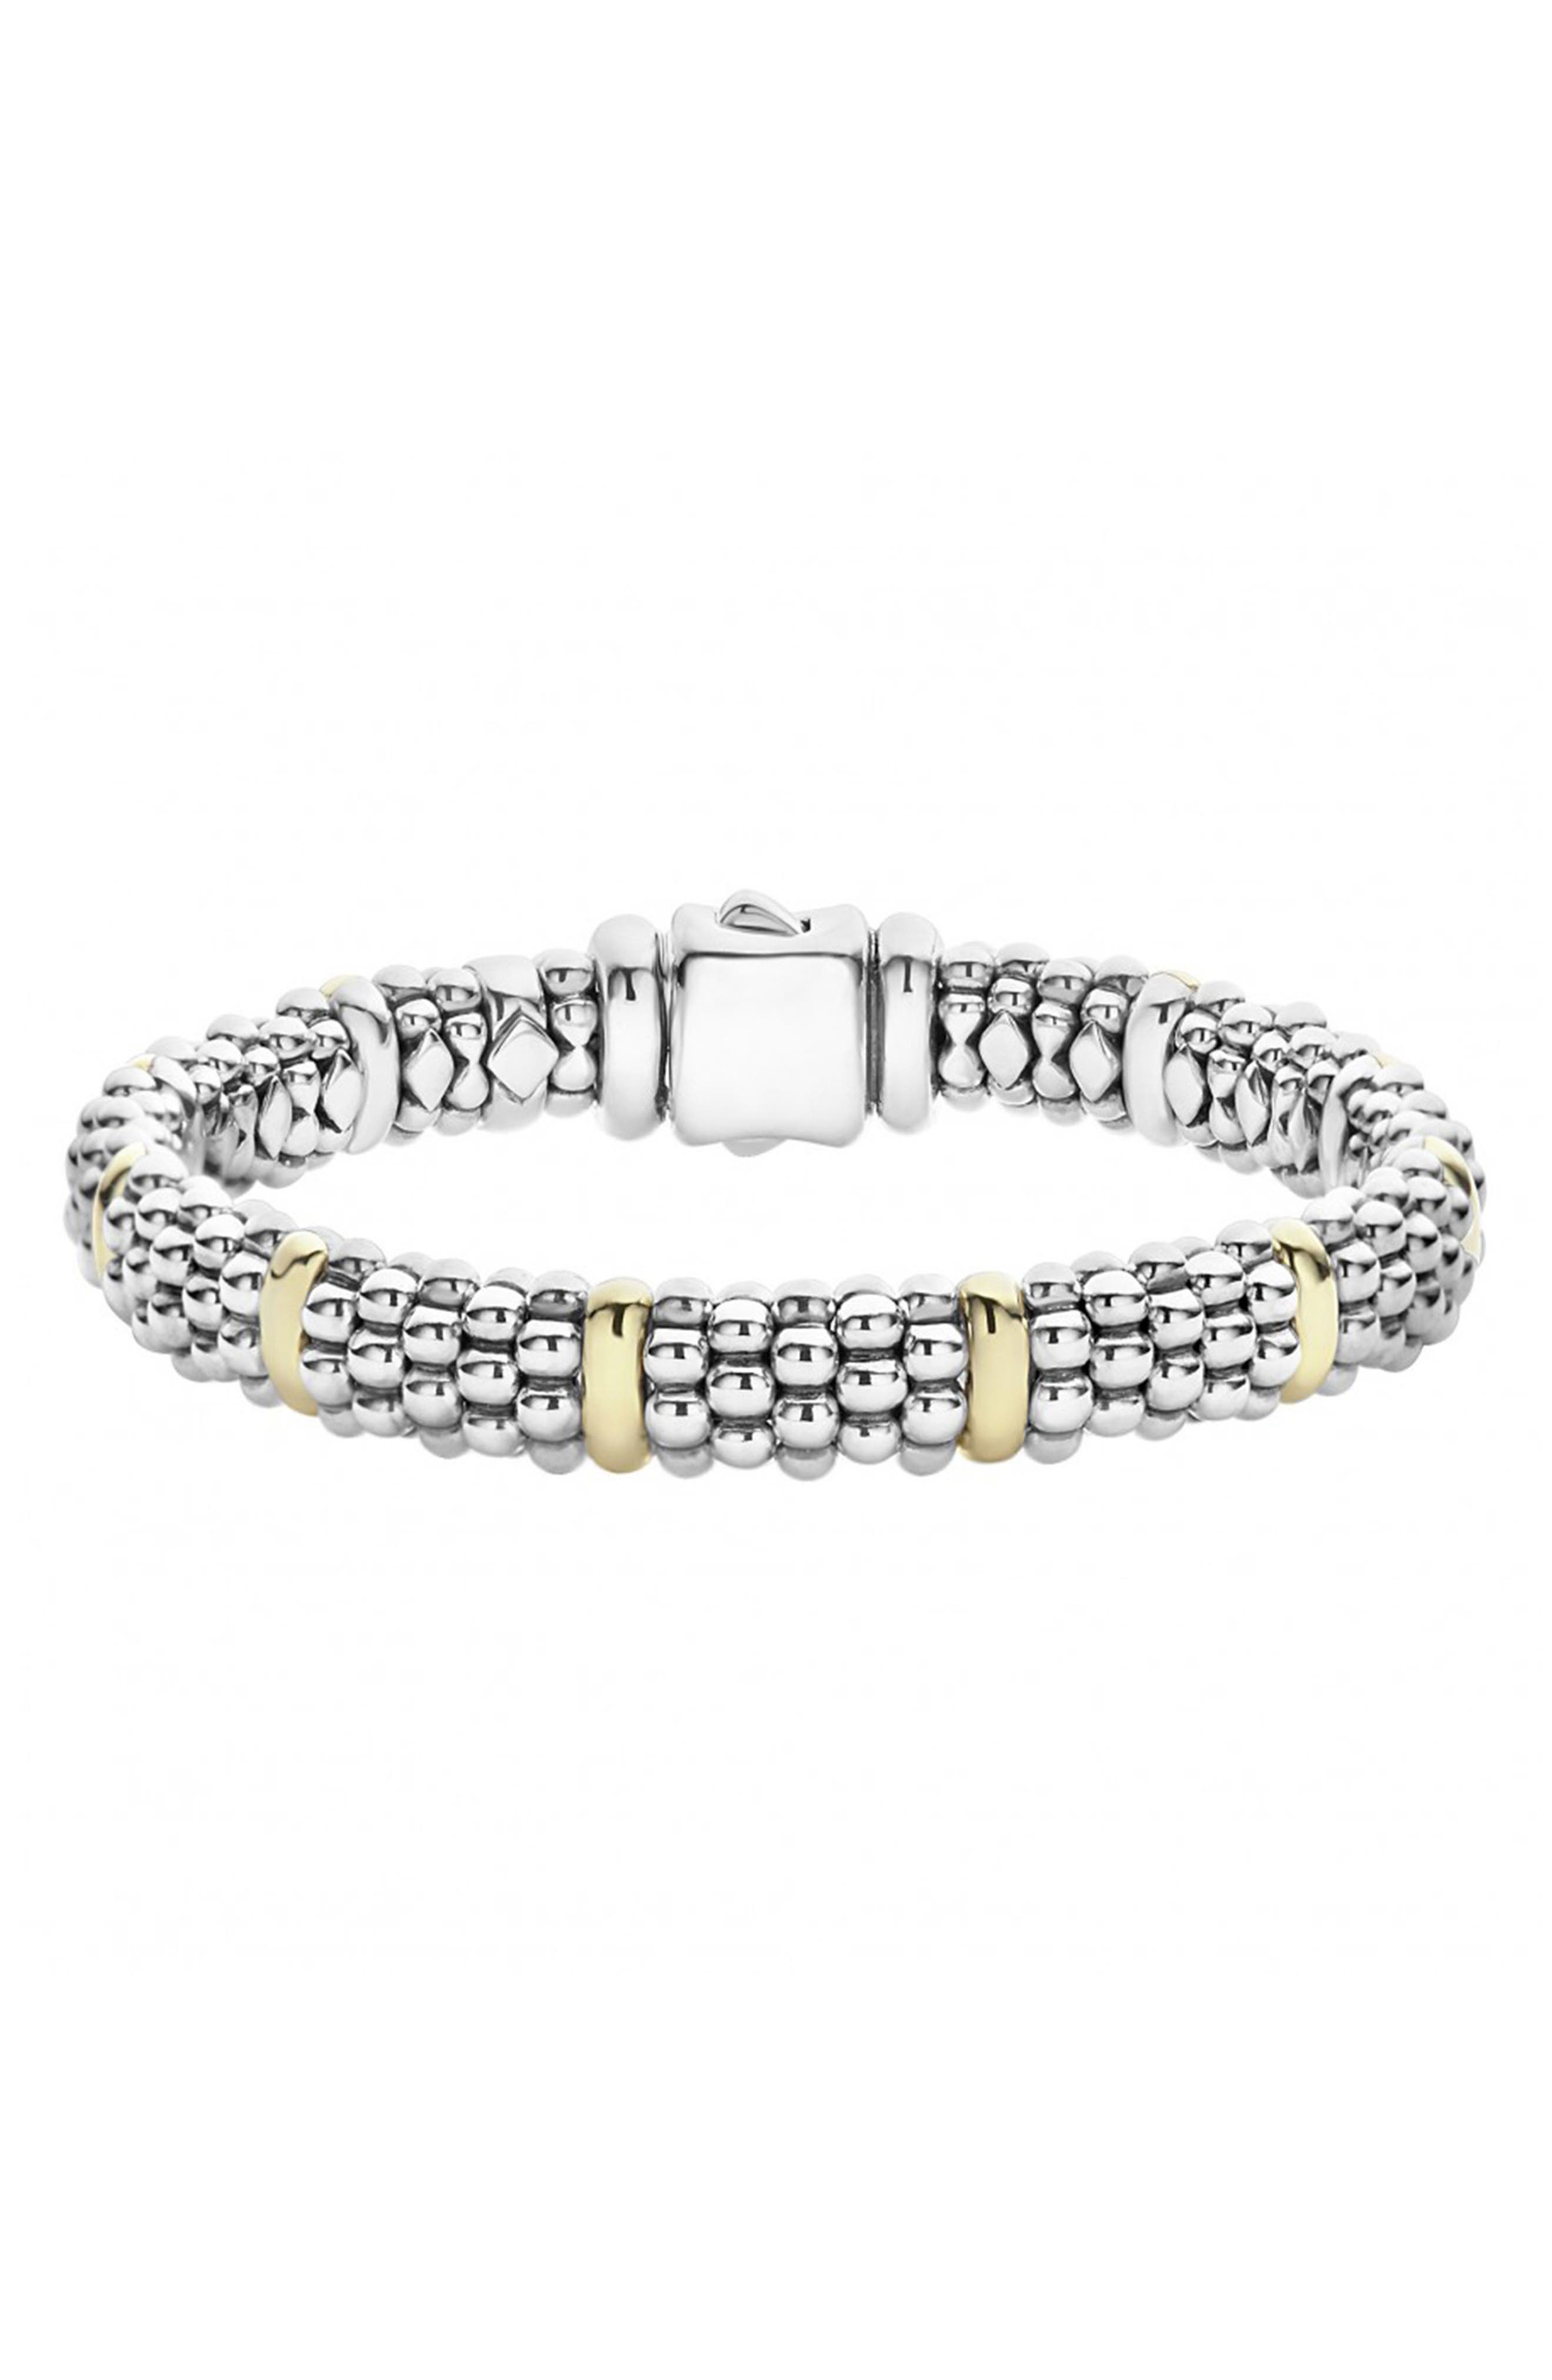 Oval Rope Caviar Bracelet,                             Main thumbnail 1, color,                             SILVER/ GOLD